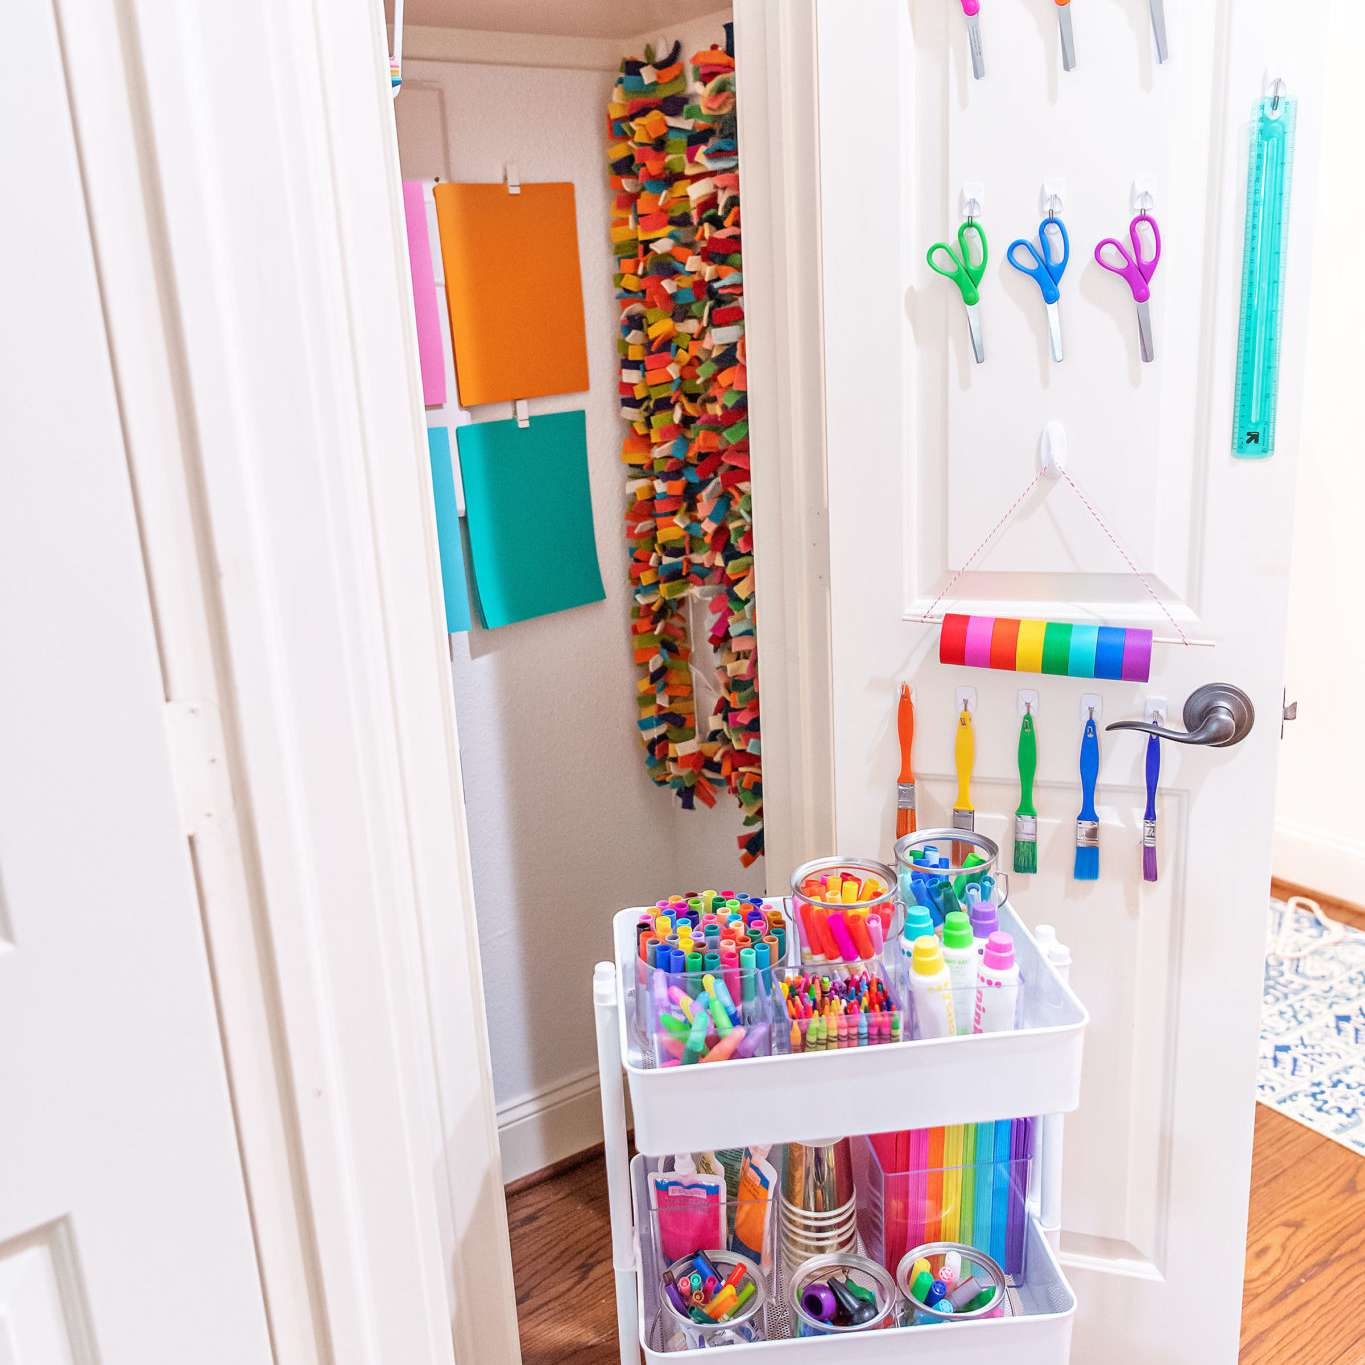 craft supplies stores on hooks behind a closet door and in a cart